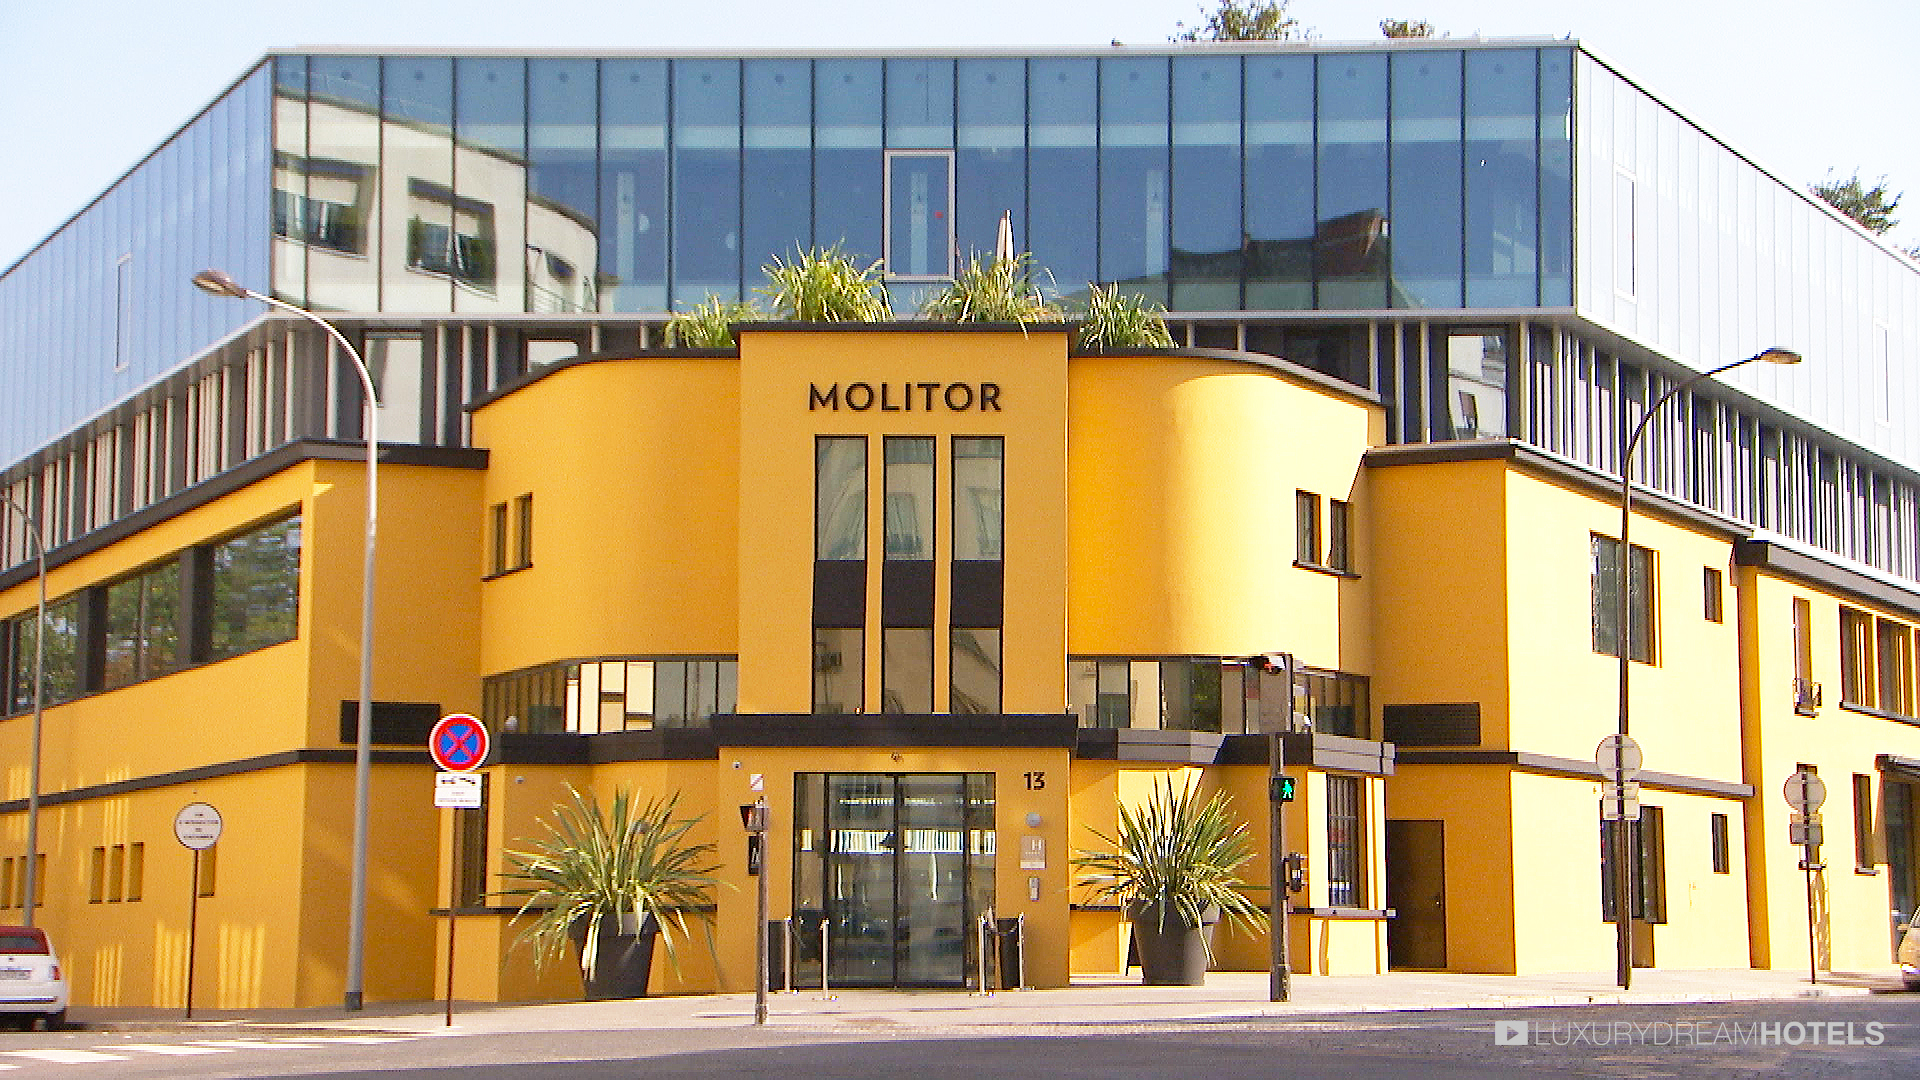 Luxury Hotel Hotel Molitor Paris Mgallery Collection Paris